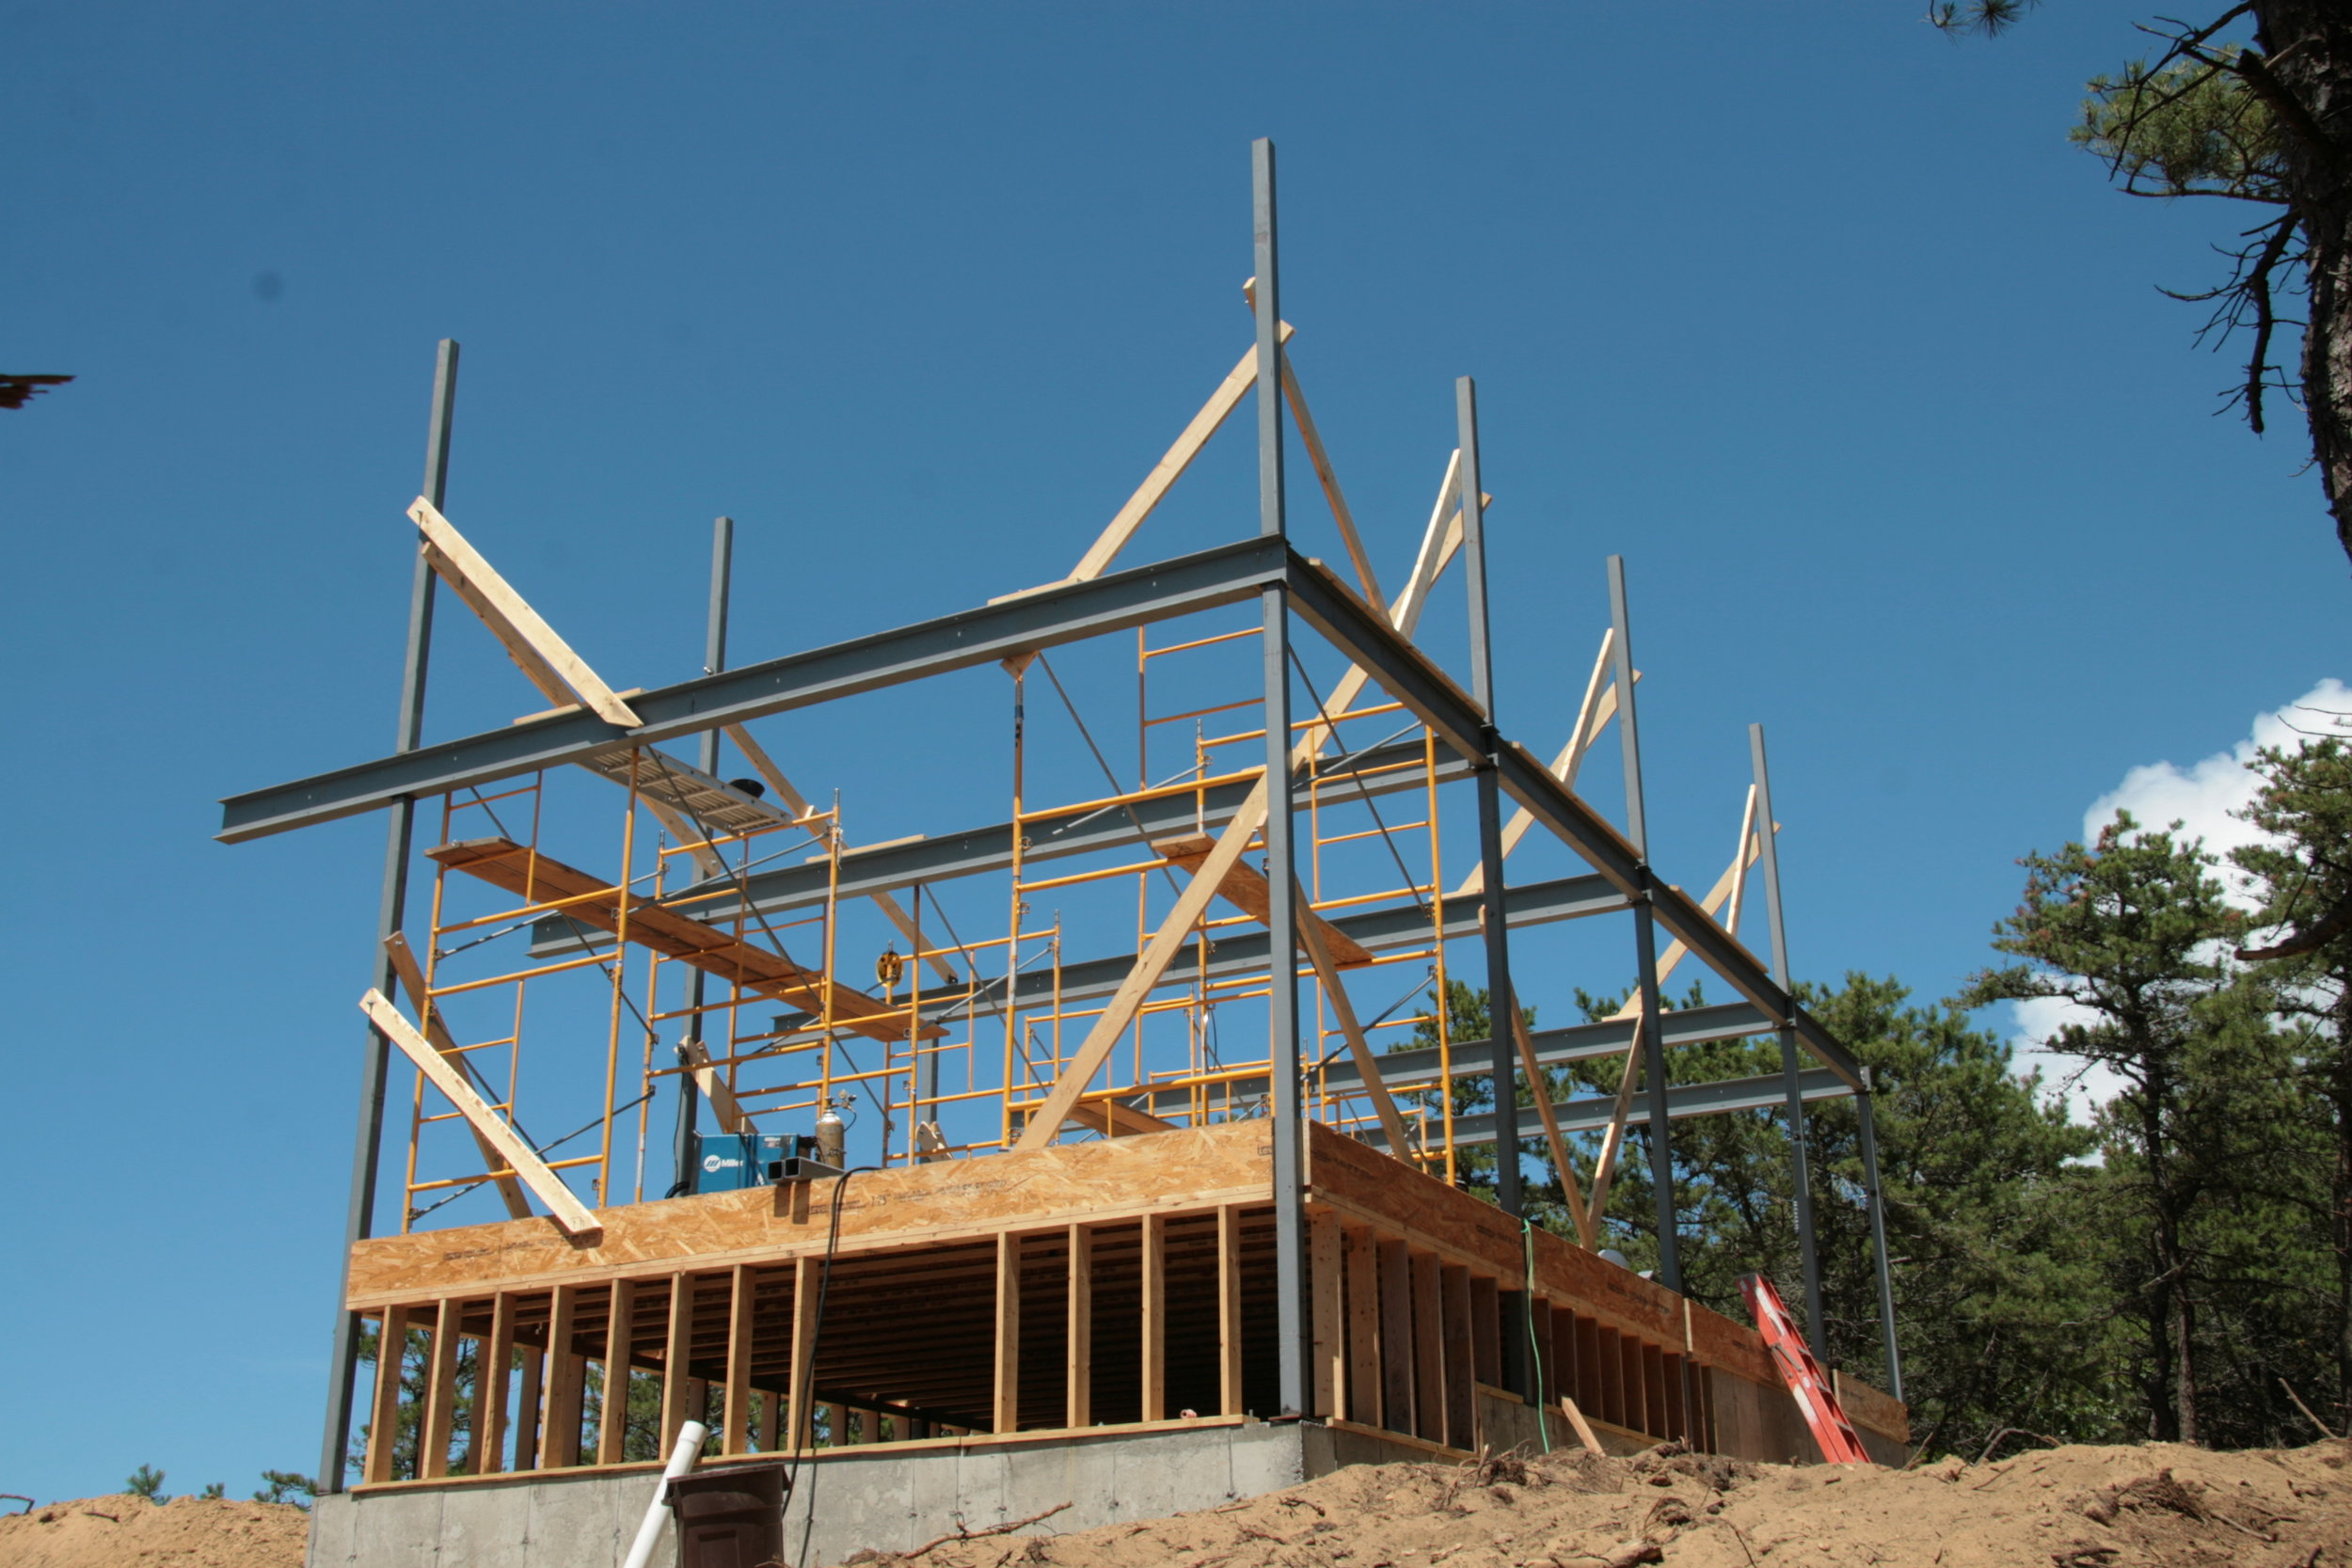 Steel Frame to allow large deck and sustain high winds